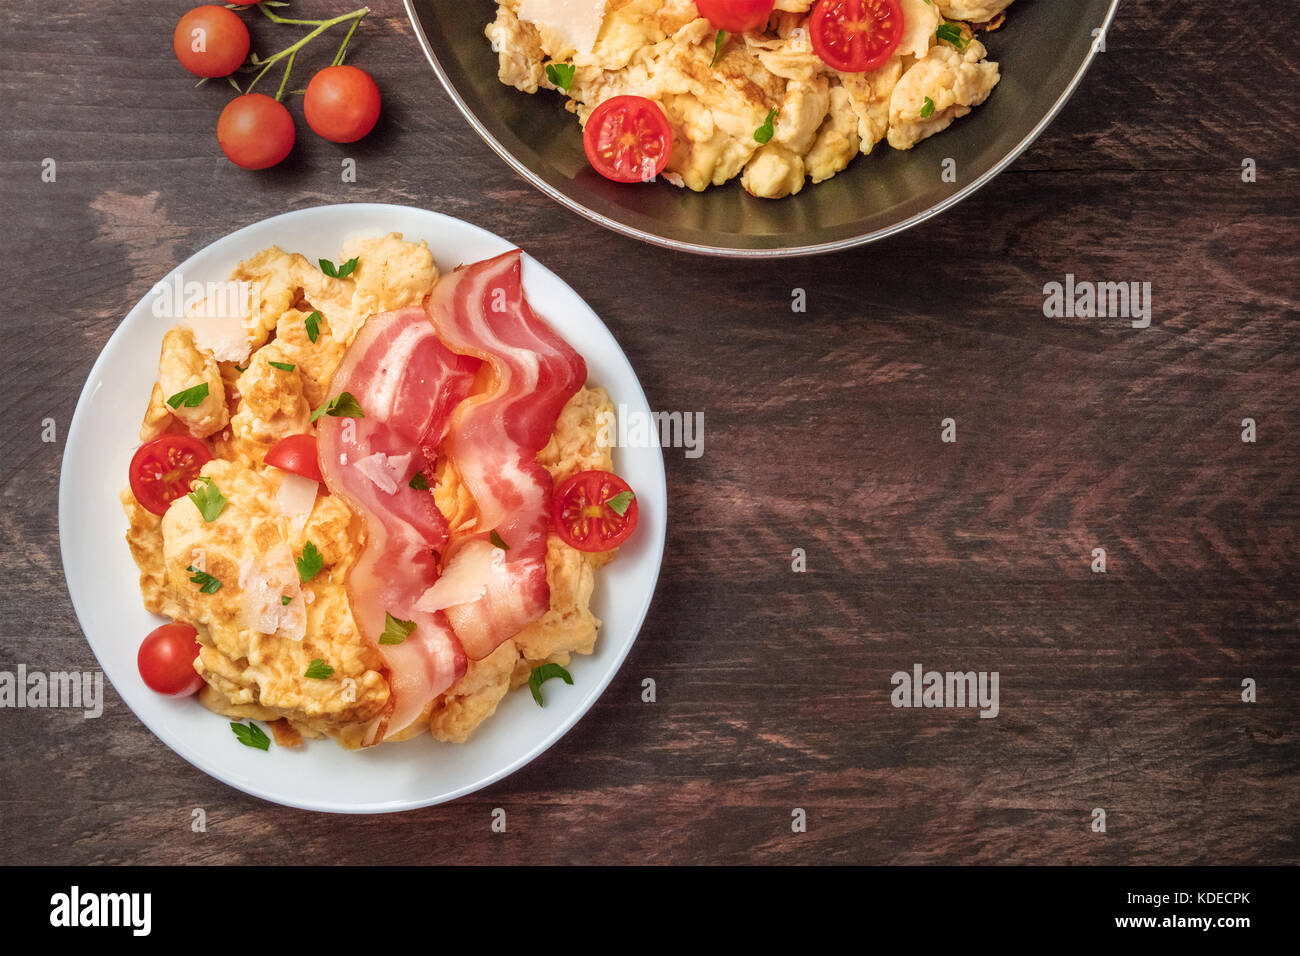 Scrambled eggs with cheese, bacon, and copy space - Stock Image